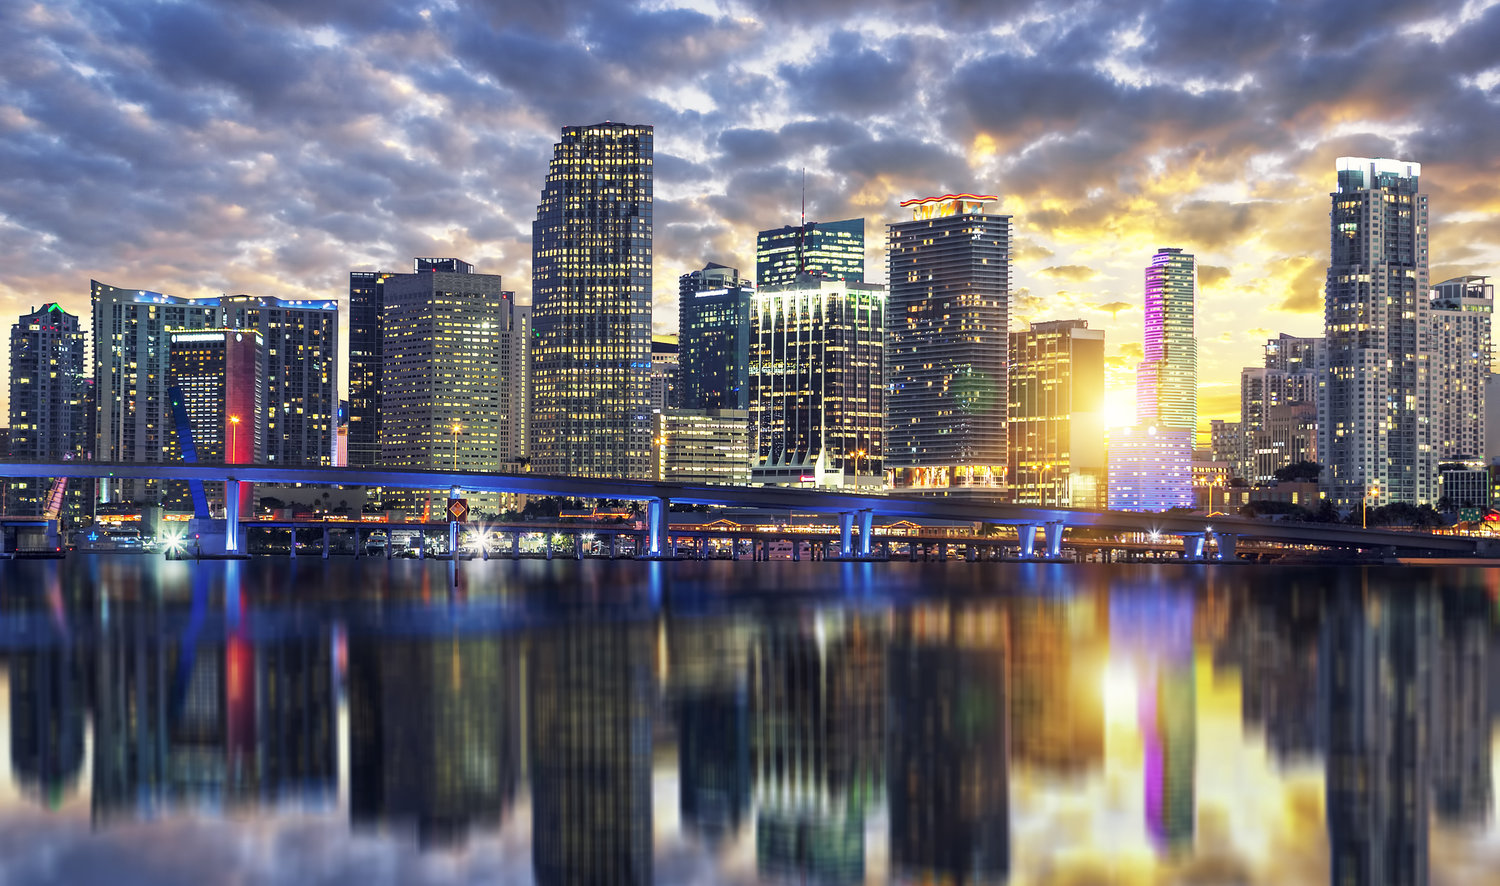 View of Miami buildings at sunset, USA